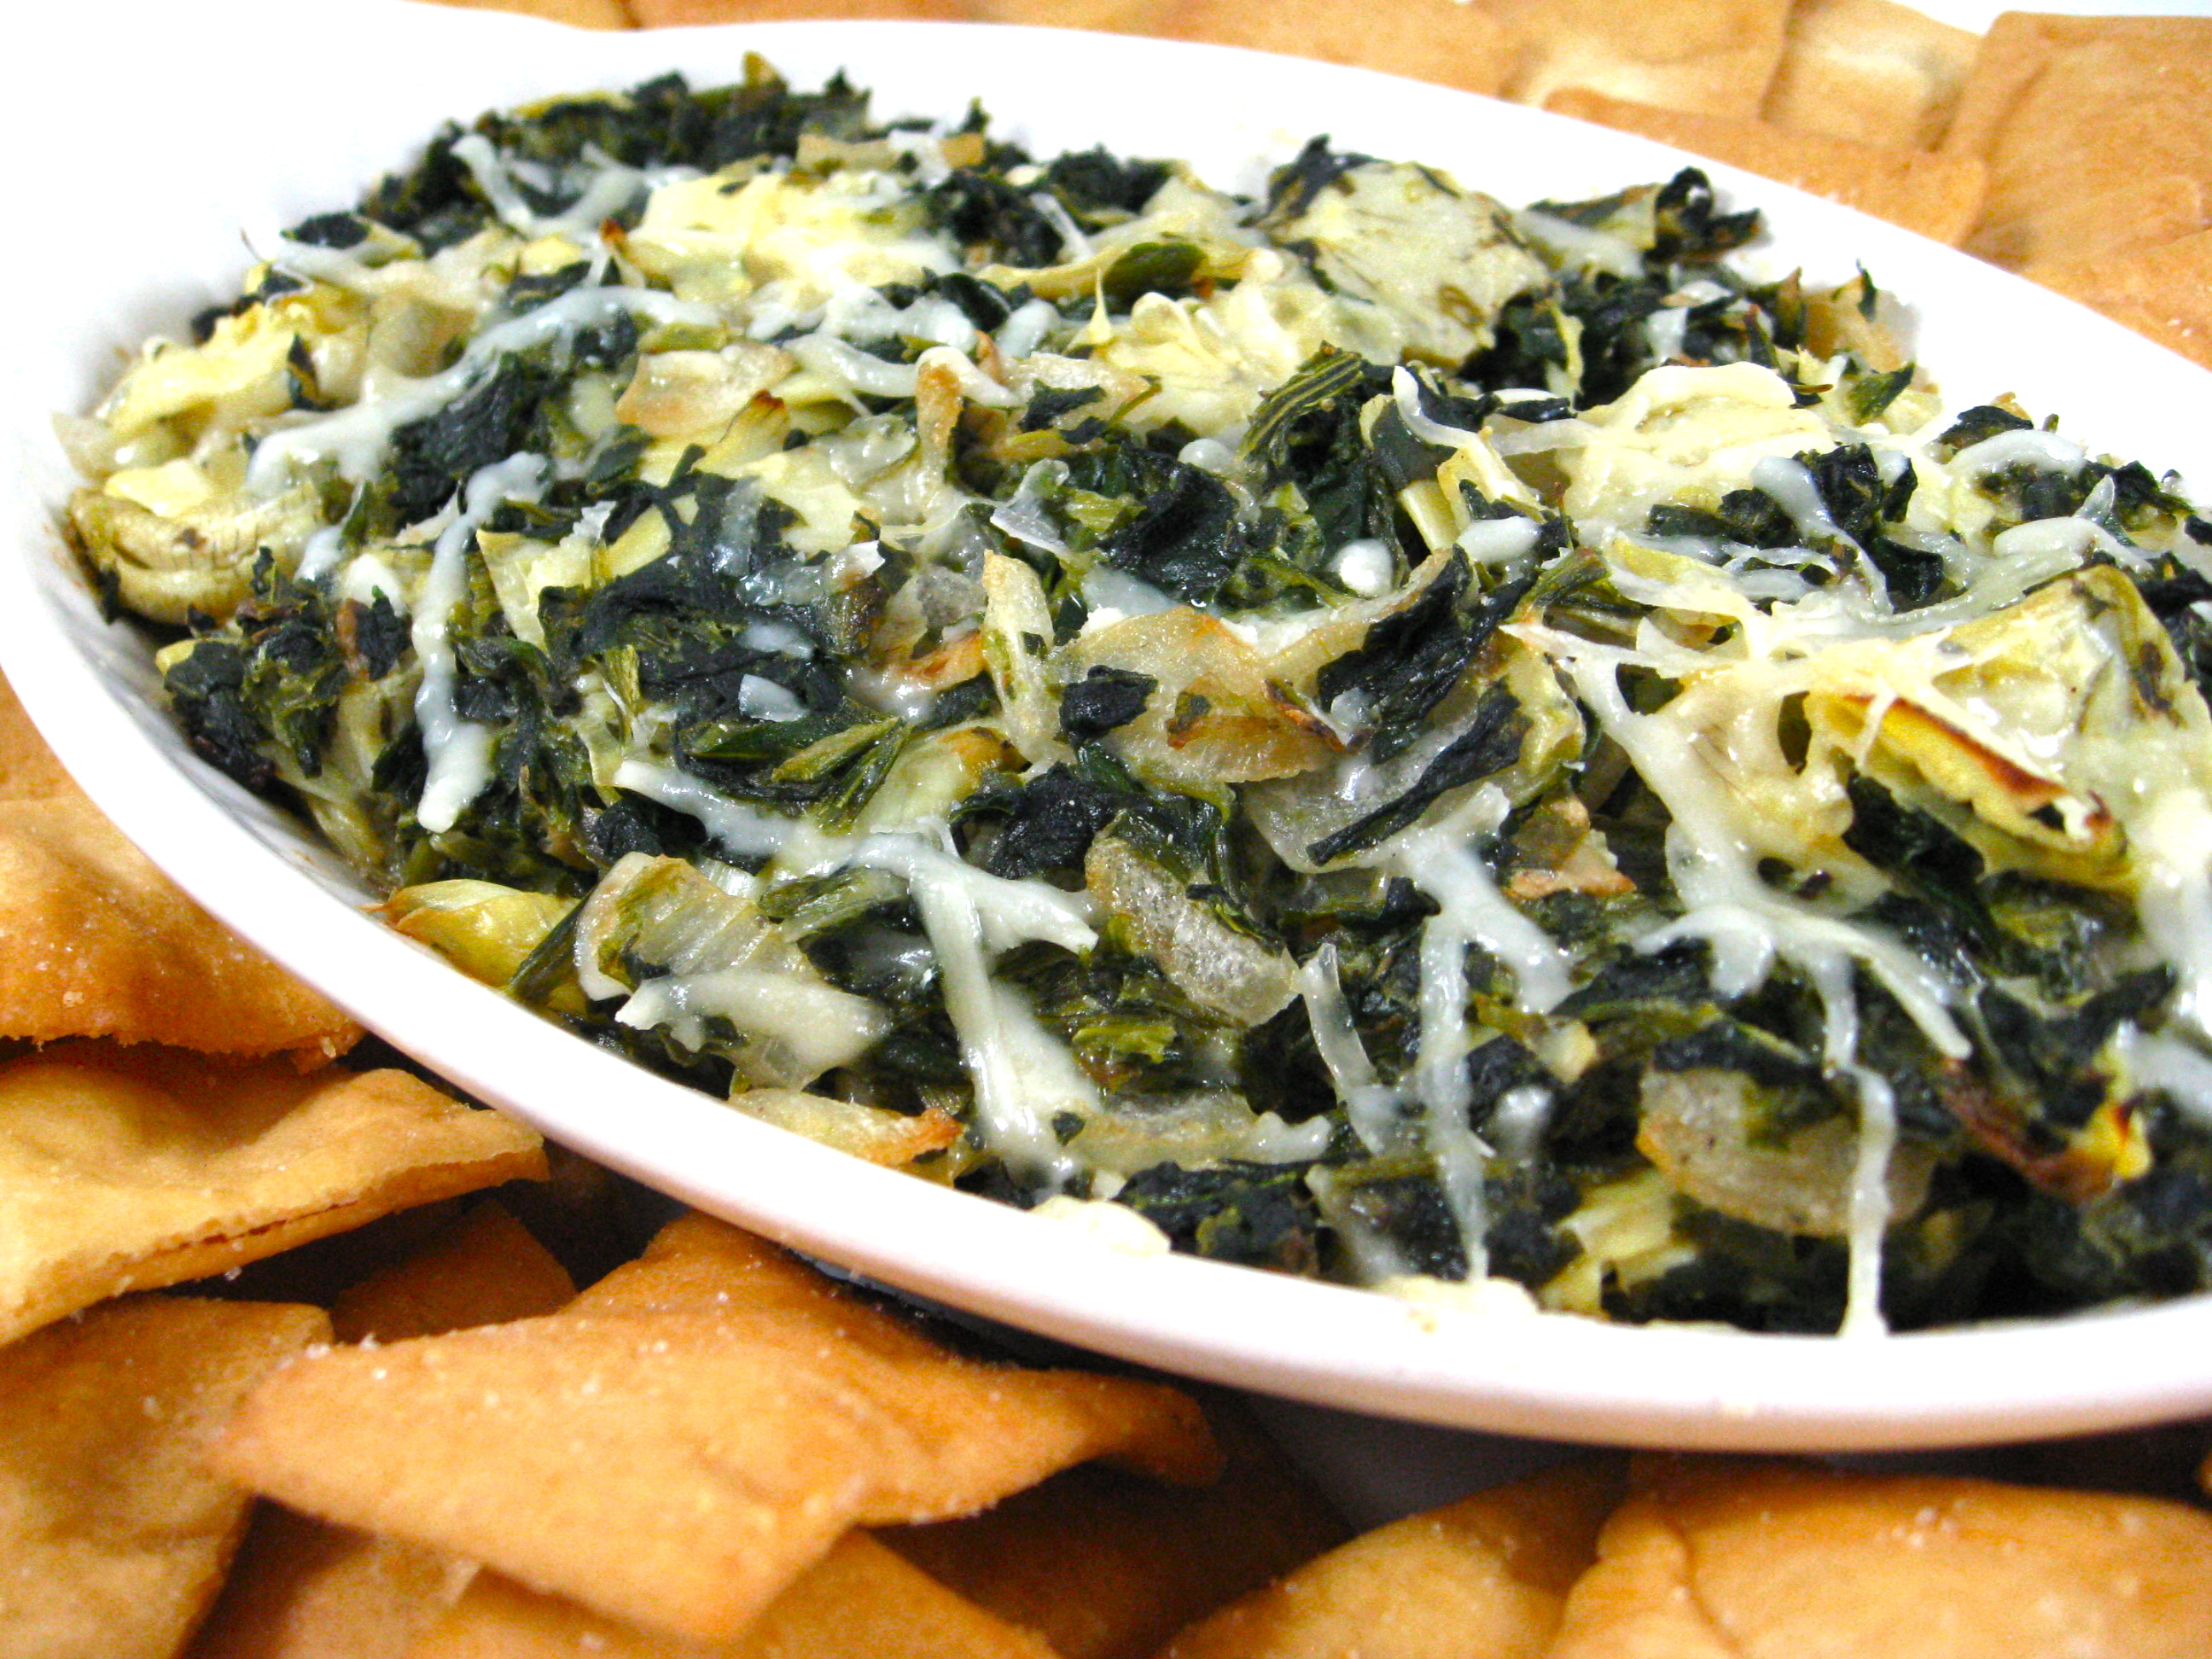 Skinny Hot Spinach and Artichoke Dip with Weight Watchers Points ...